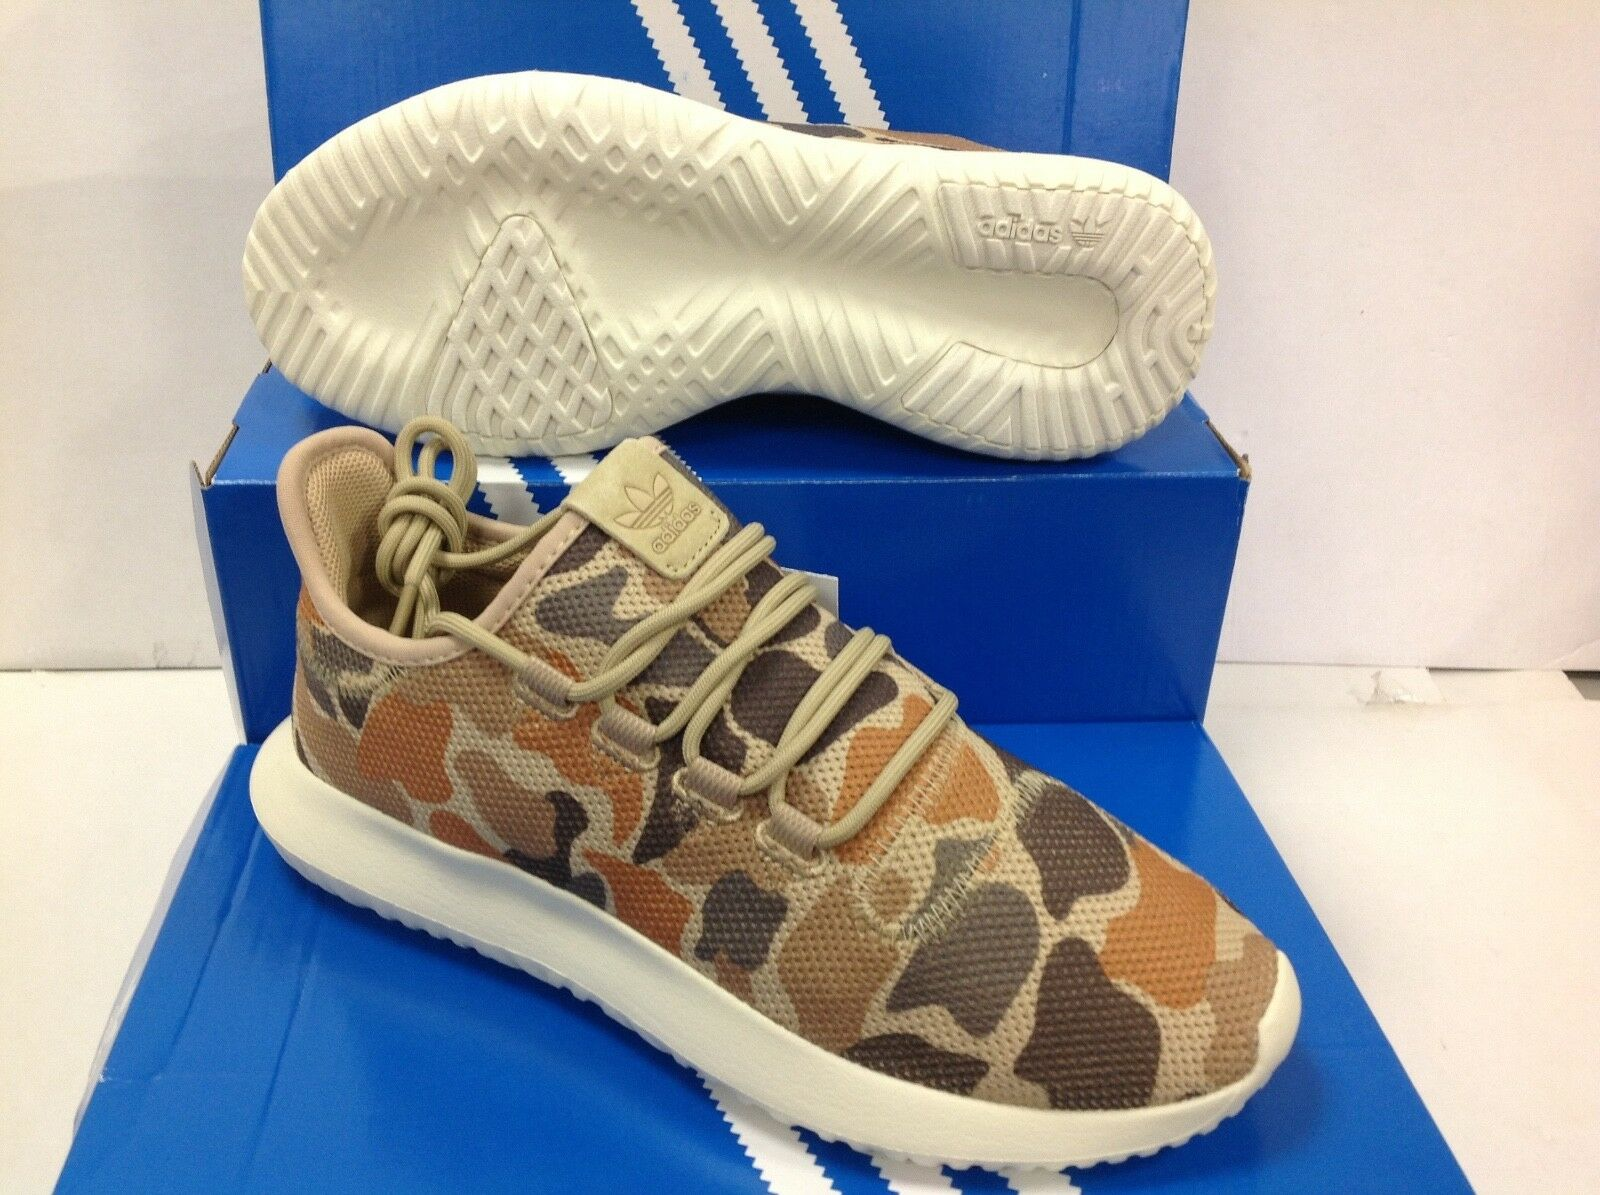 ADIDAS Originals CP8684 Tubular Shadow  Herren Trainers Schuhes, Größe UK 9 / EU 43